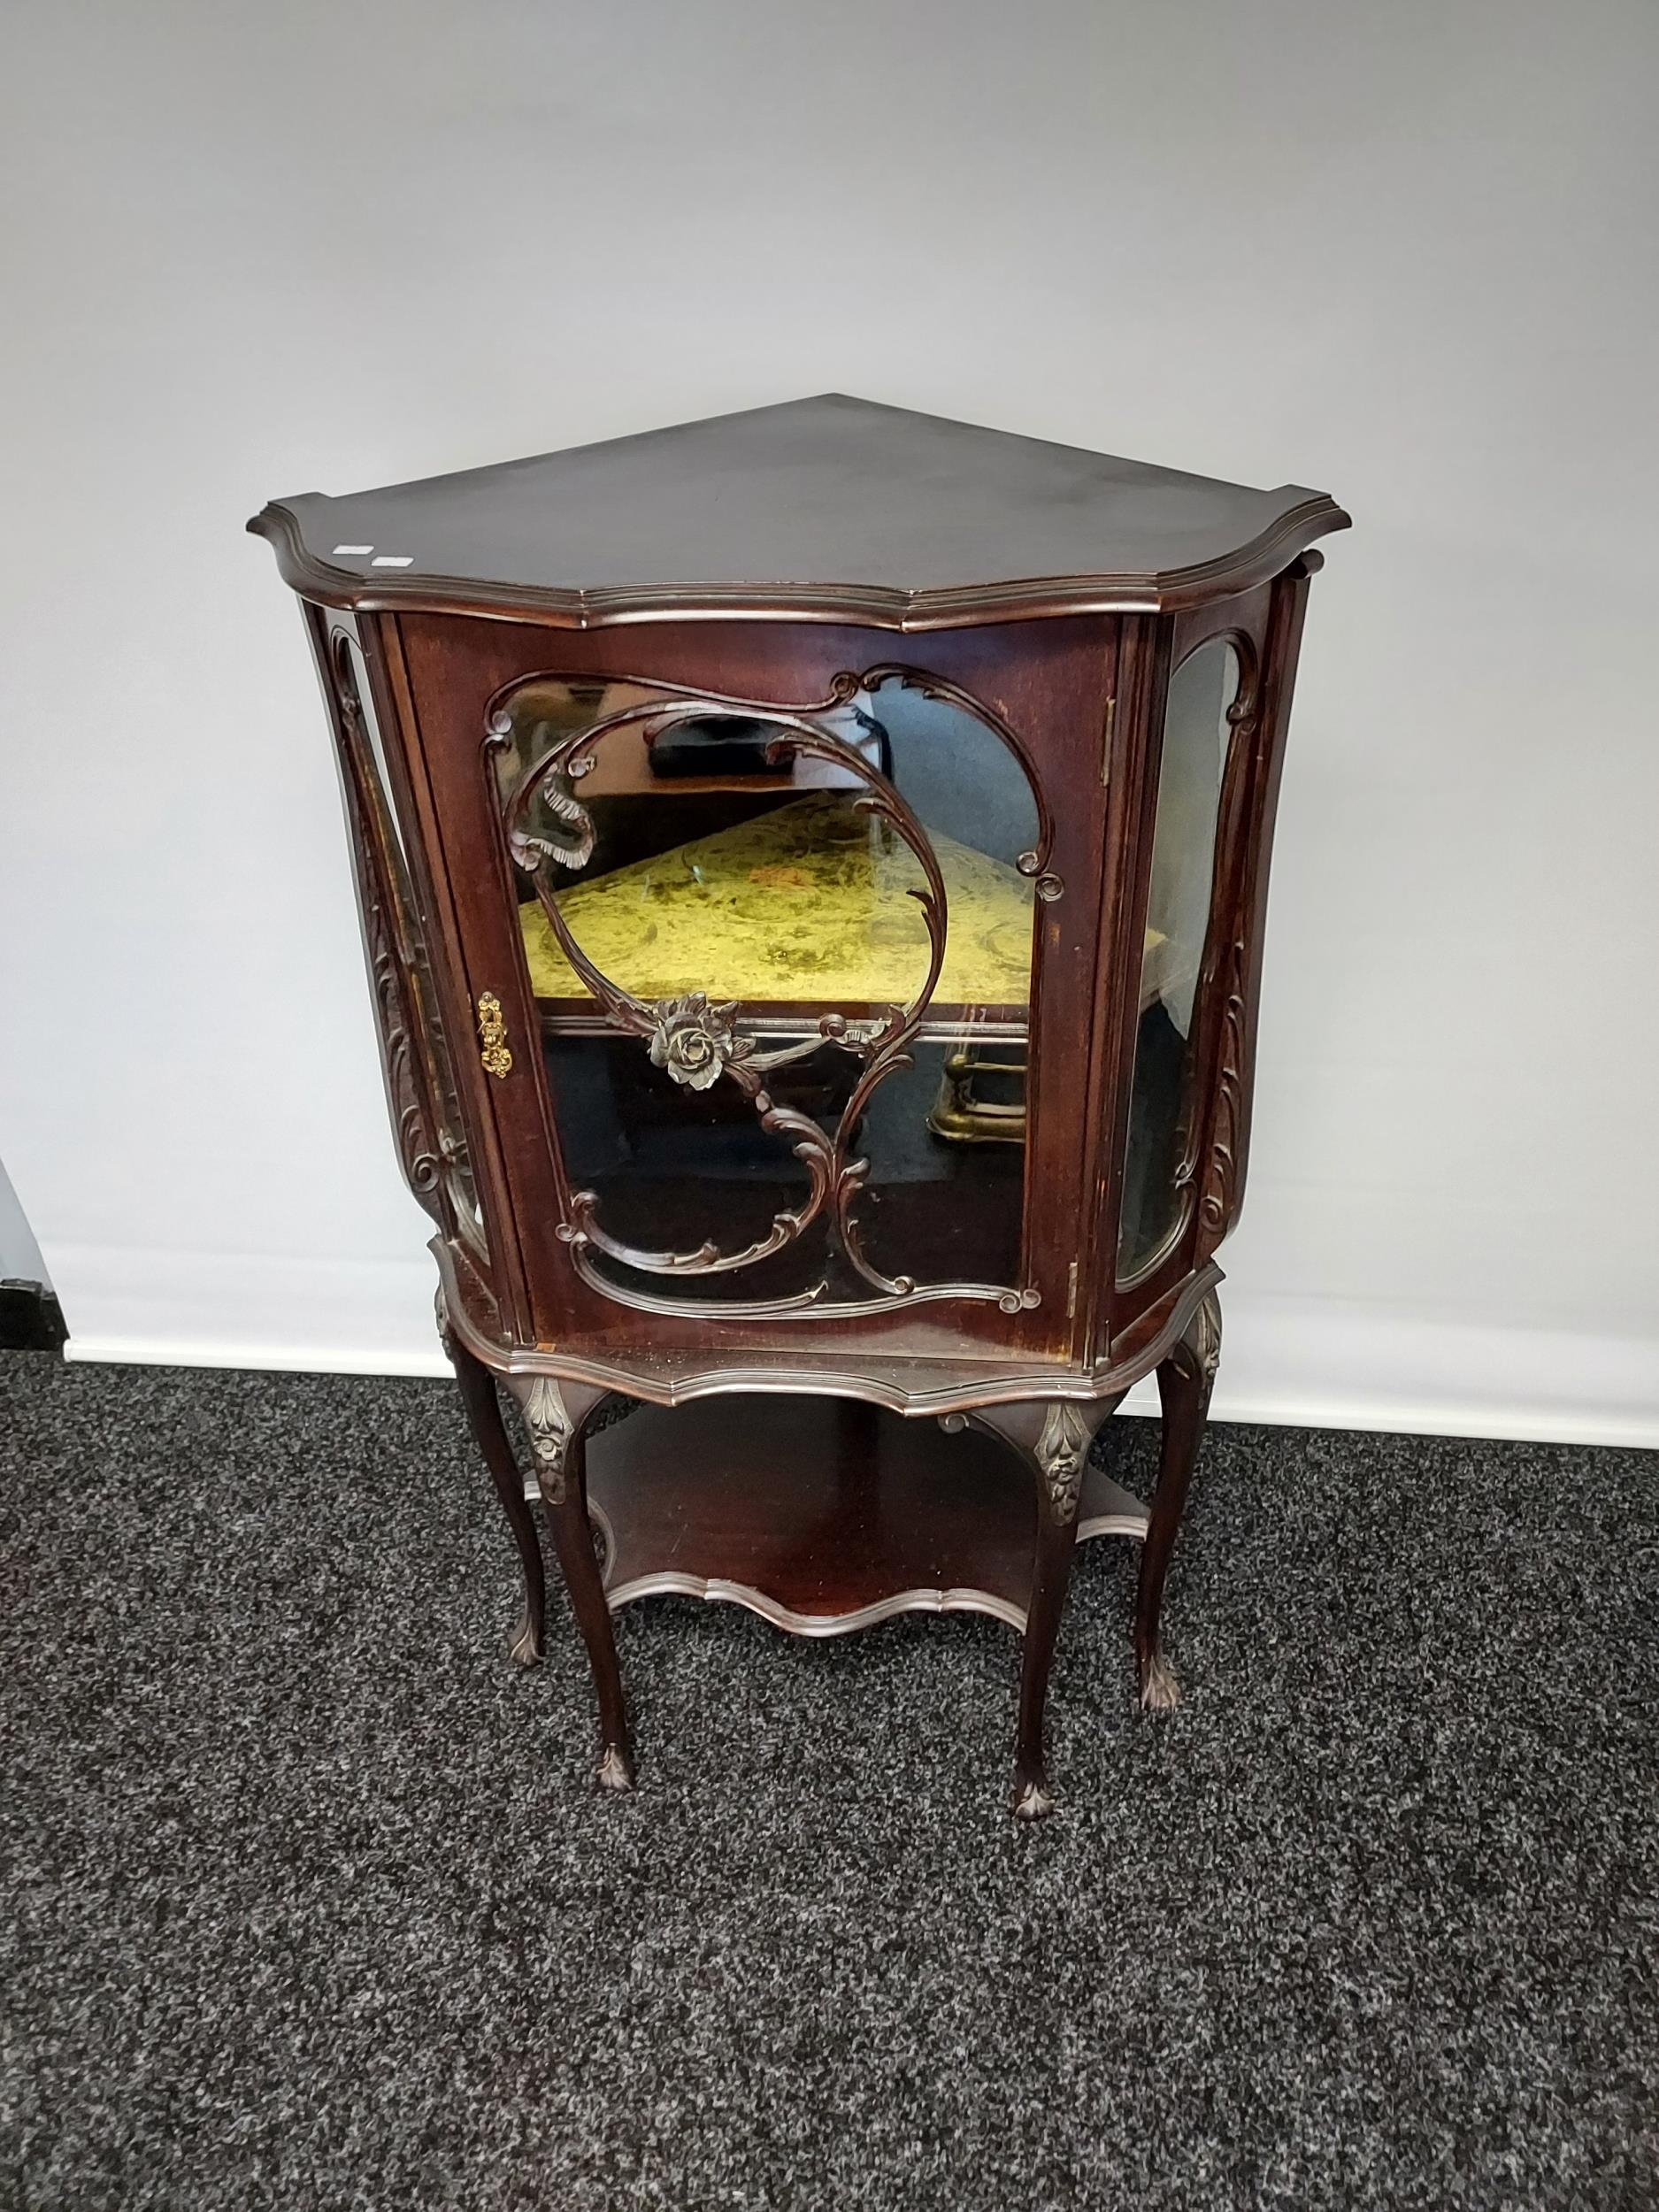 An antique Chippendale style ornate corner display cabinet. Comes with a key. [119x50x50cm]